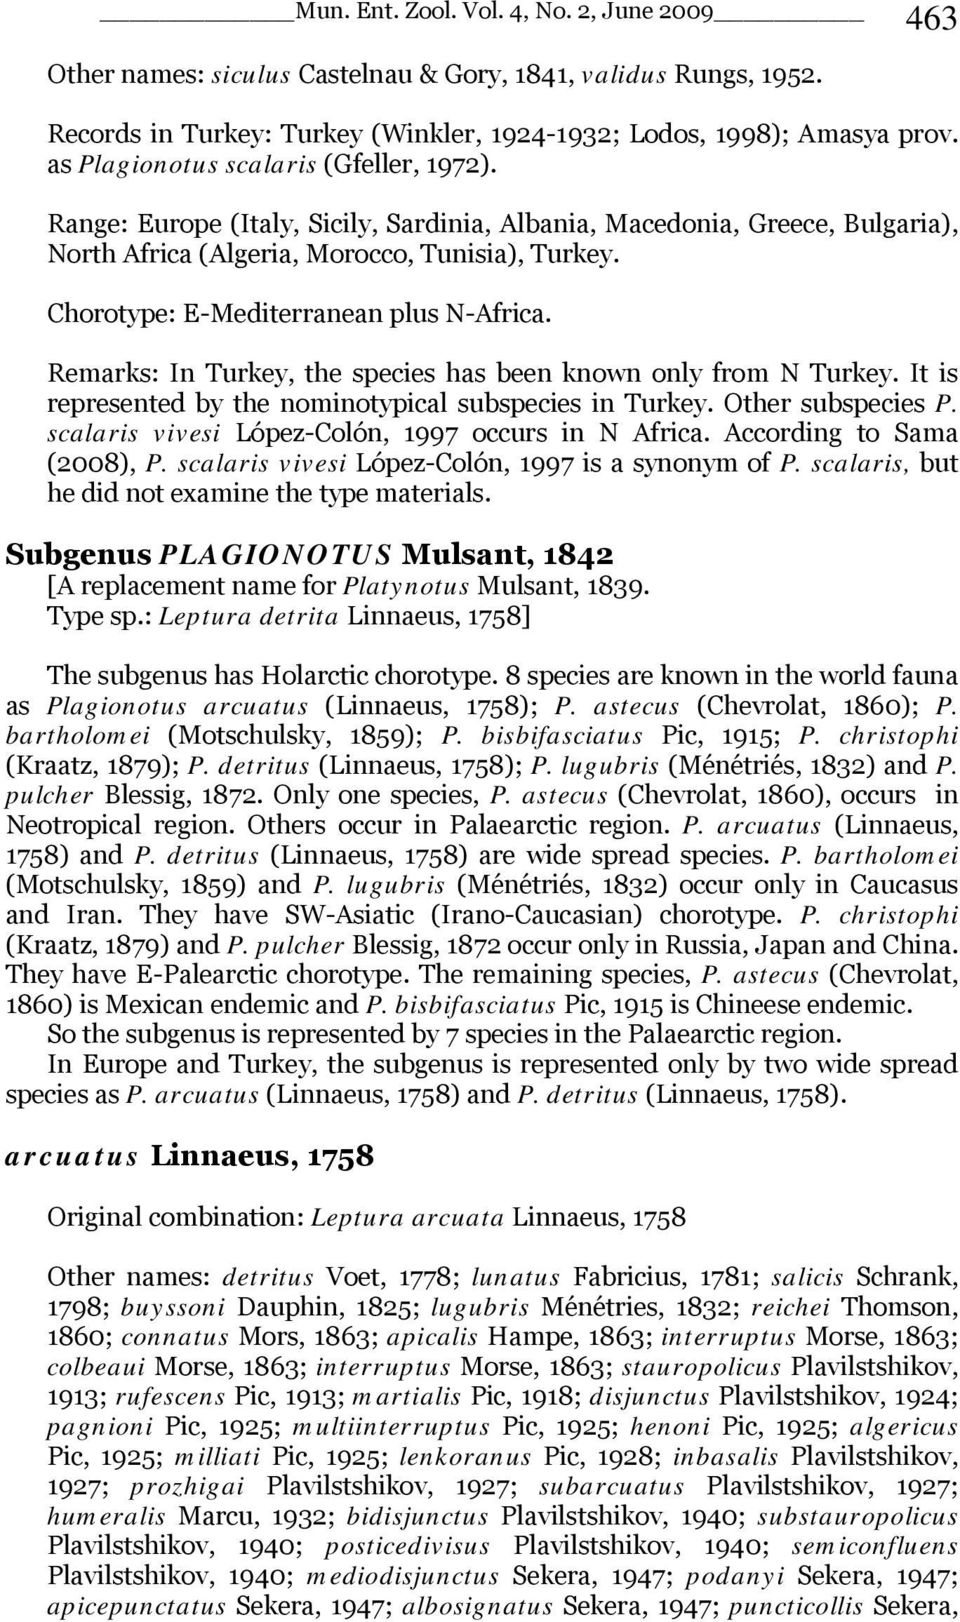 Remarks: In Turkey, the species has been known only from N Turkey. It is represented by the nominotypical subspecies in Turkey. Other subspecies P.